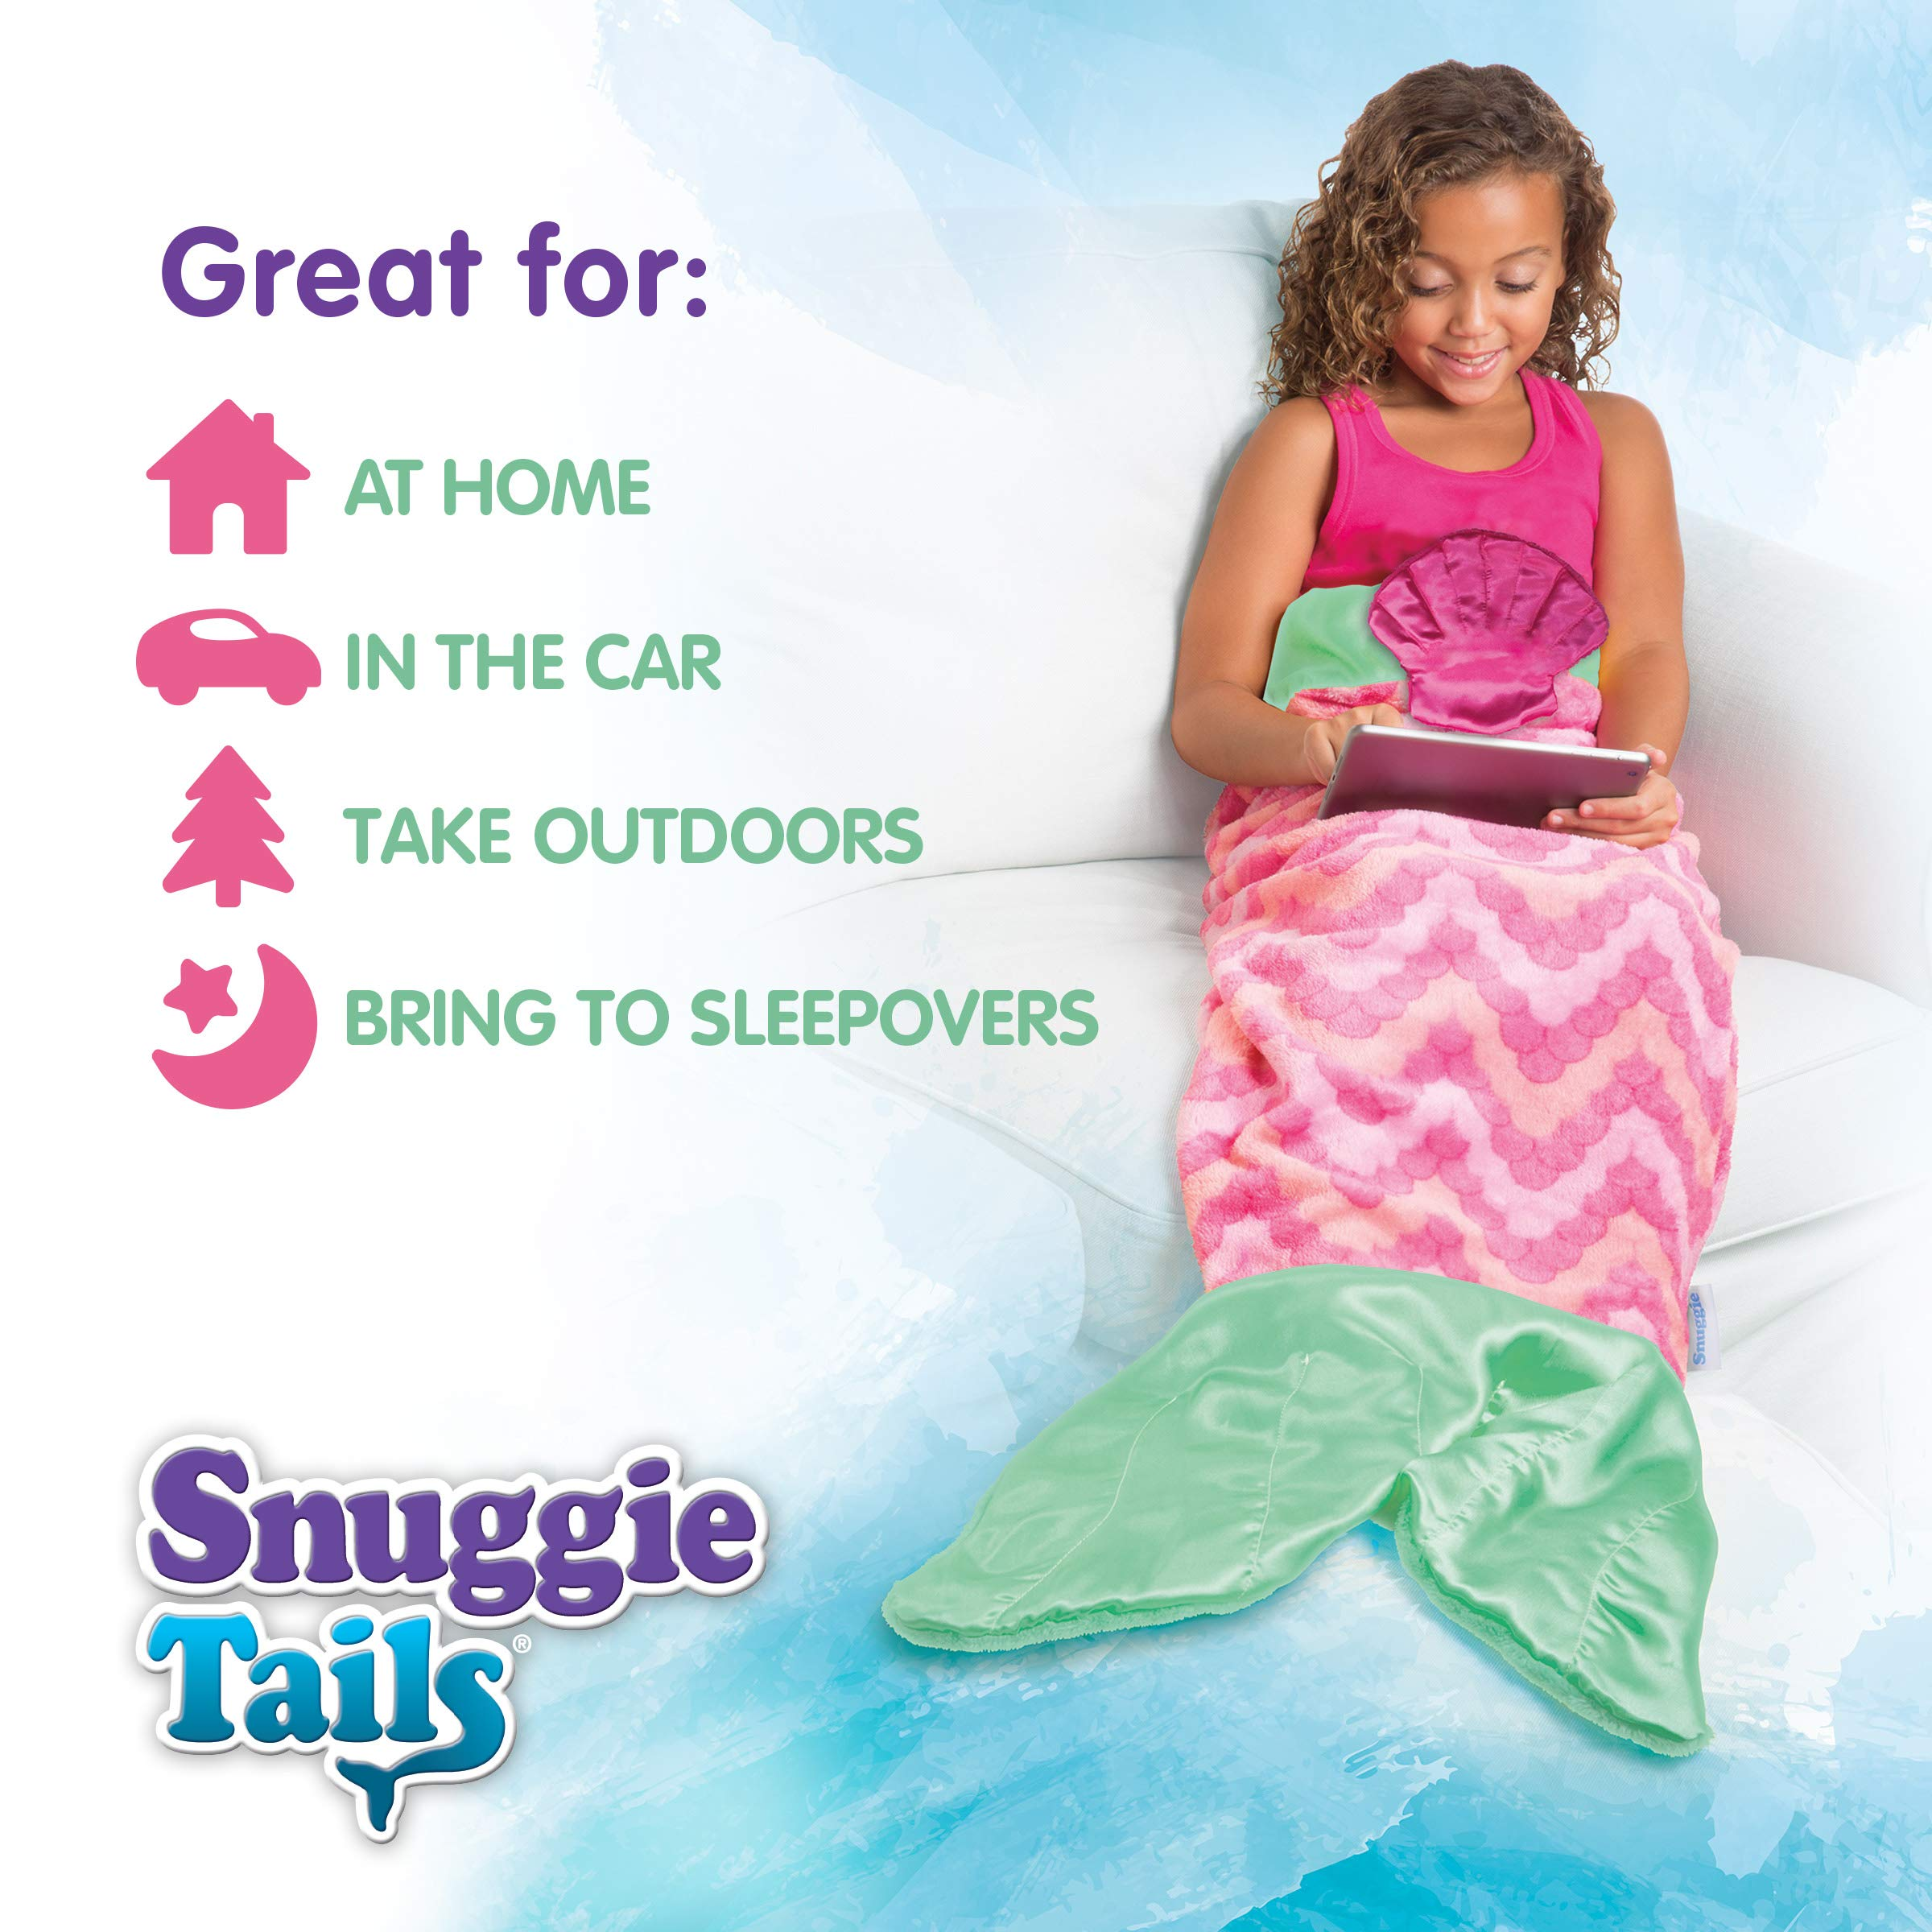 Snuggie Tails Allstar Innovations Mermaid Blanket for Kids (Pink), As Seen on TV by Snuggie Tails (Image #5)